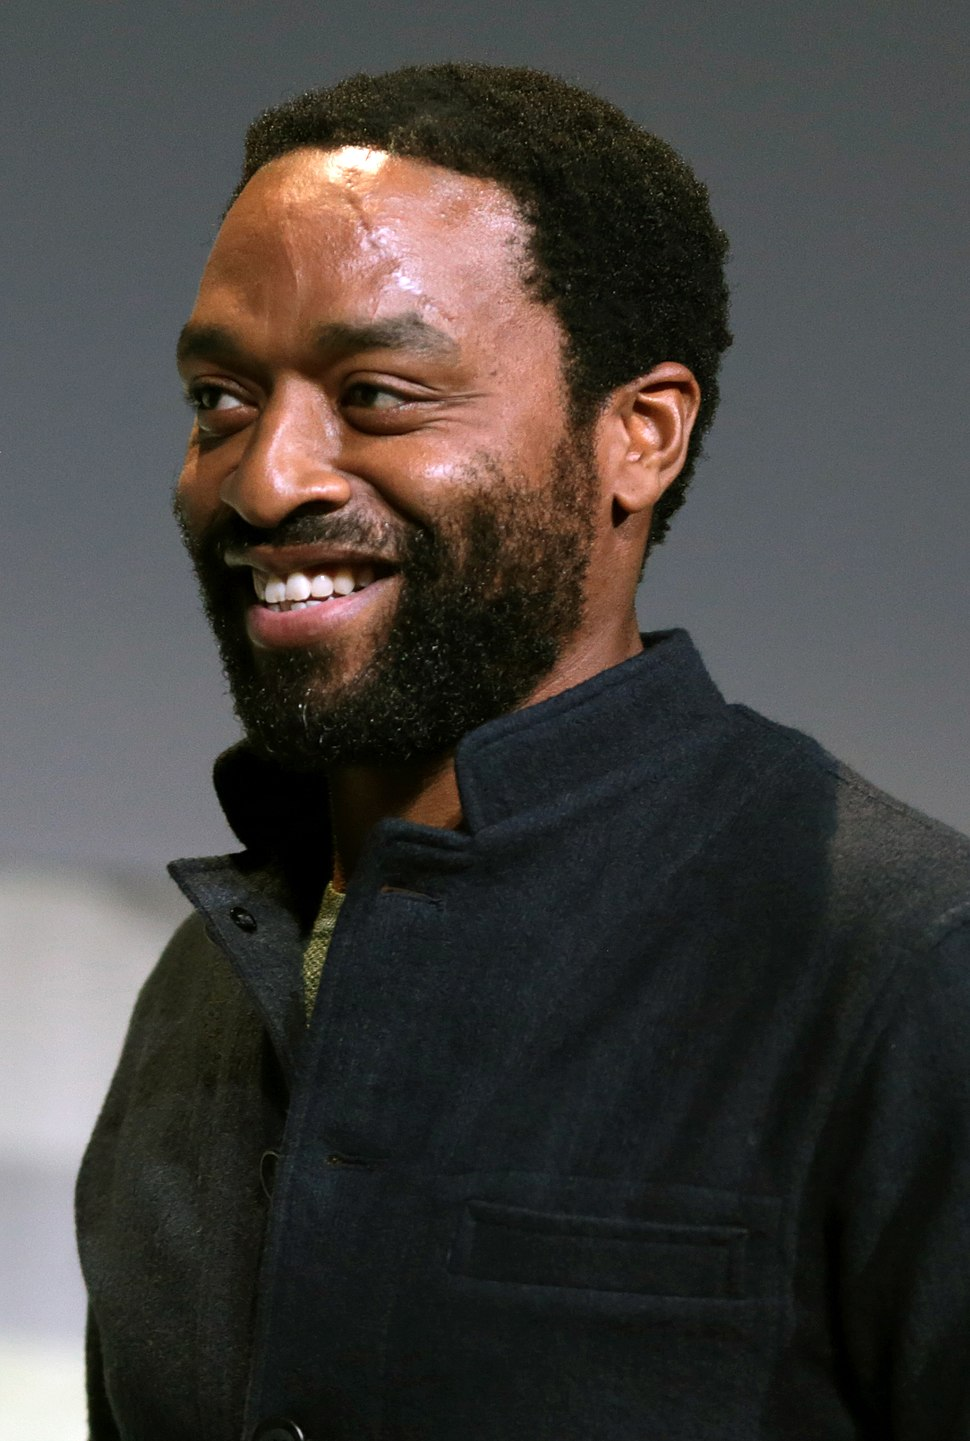 Chiwetel Ejiofor by Gage Skidmore